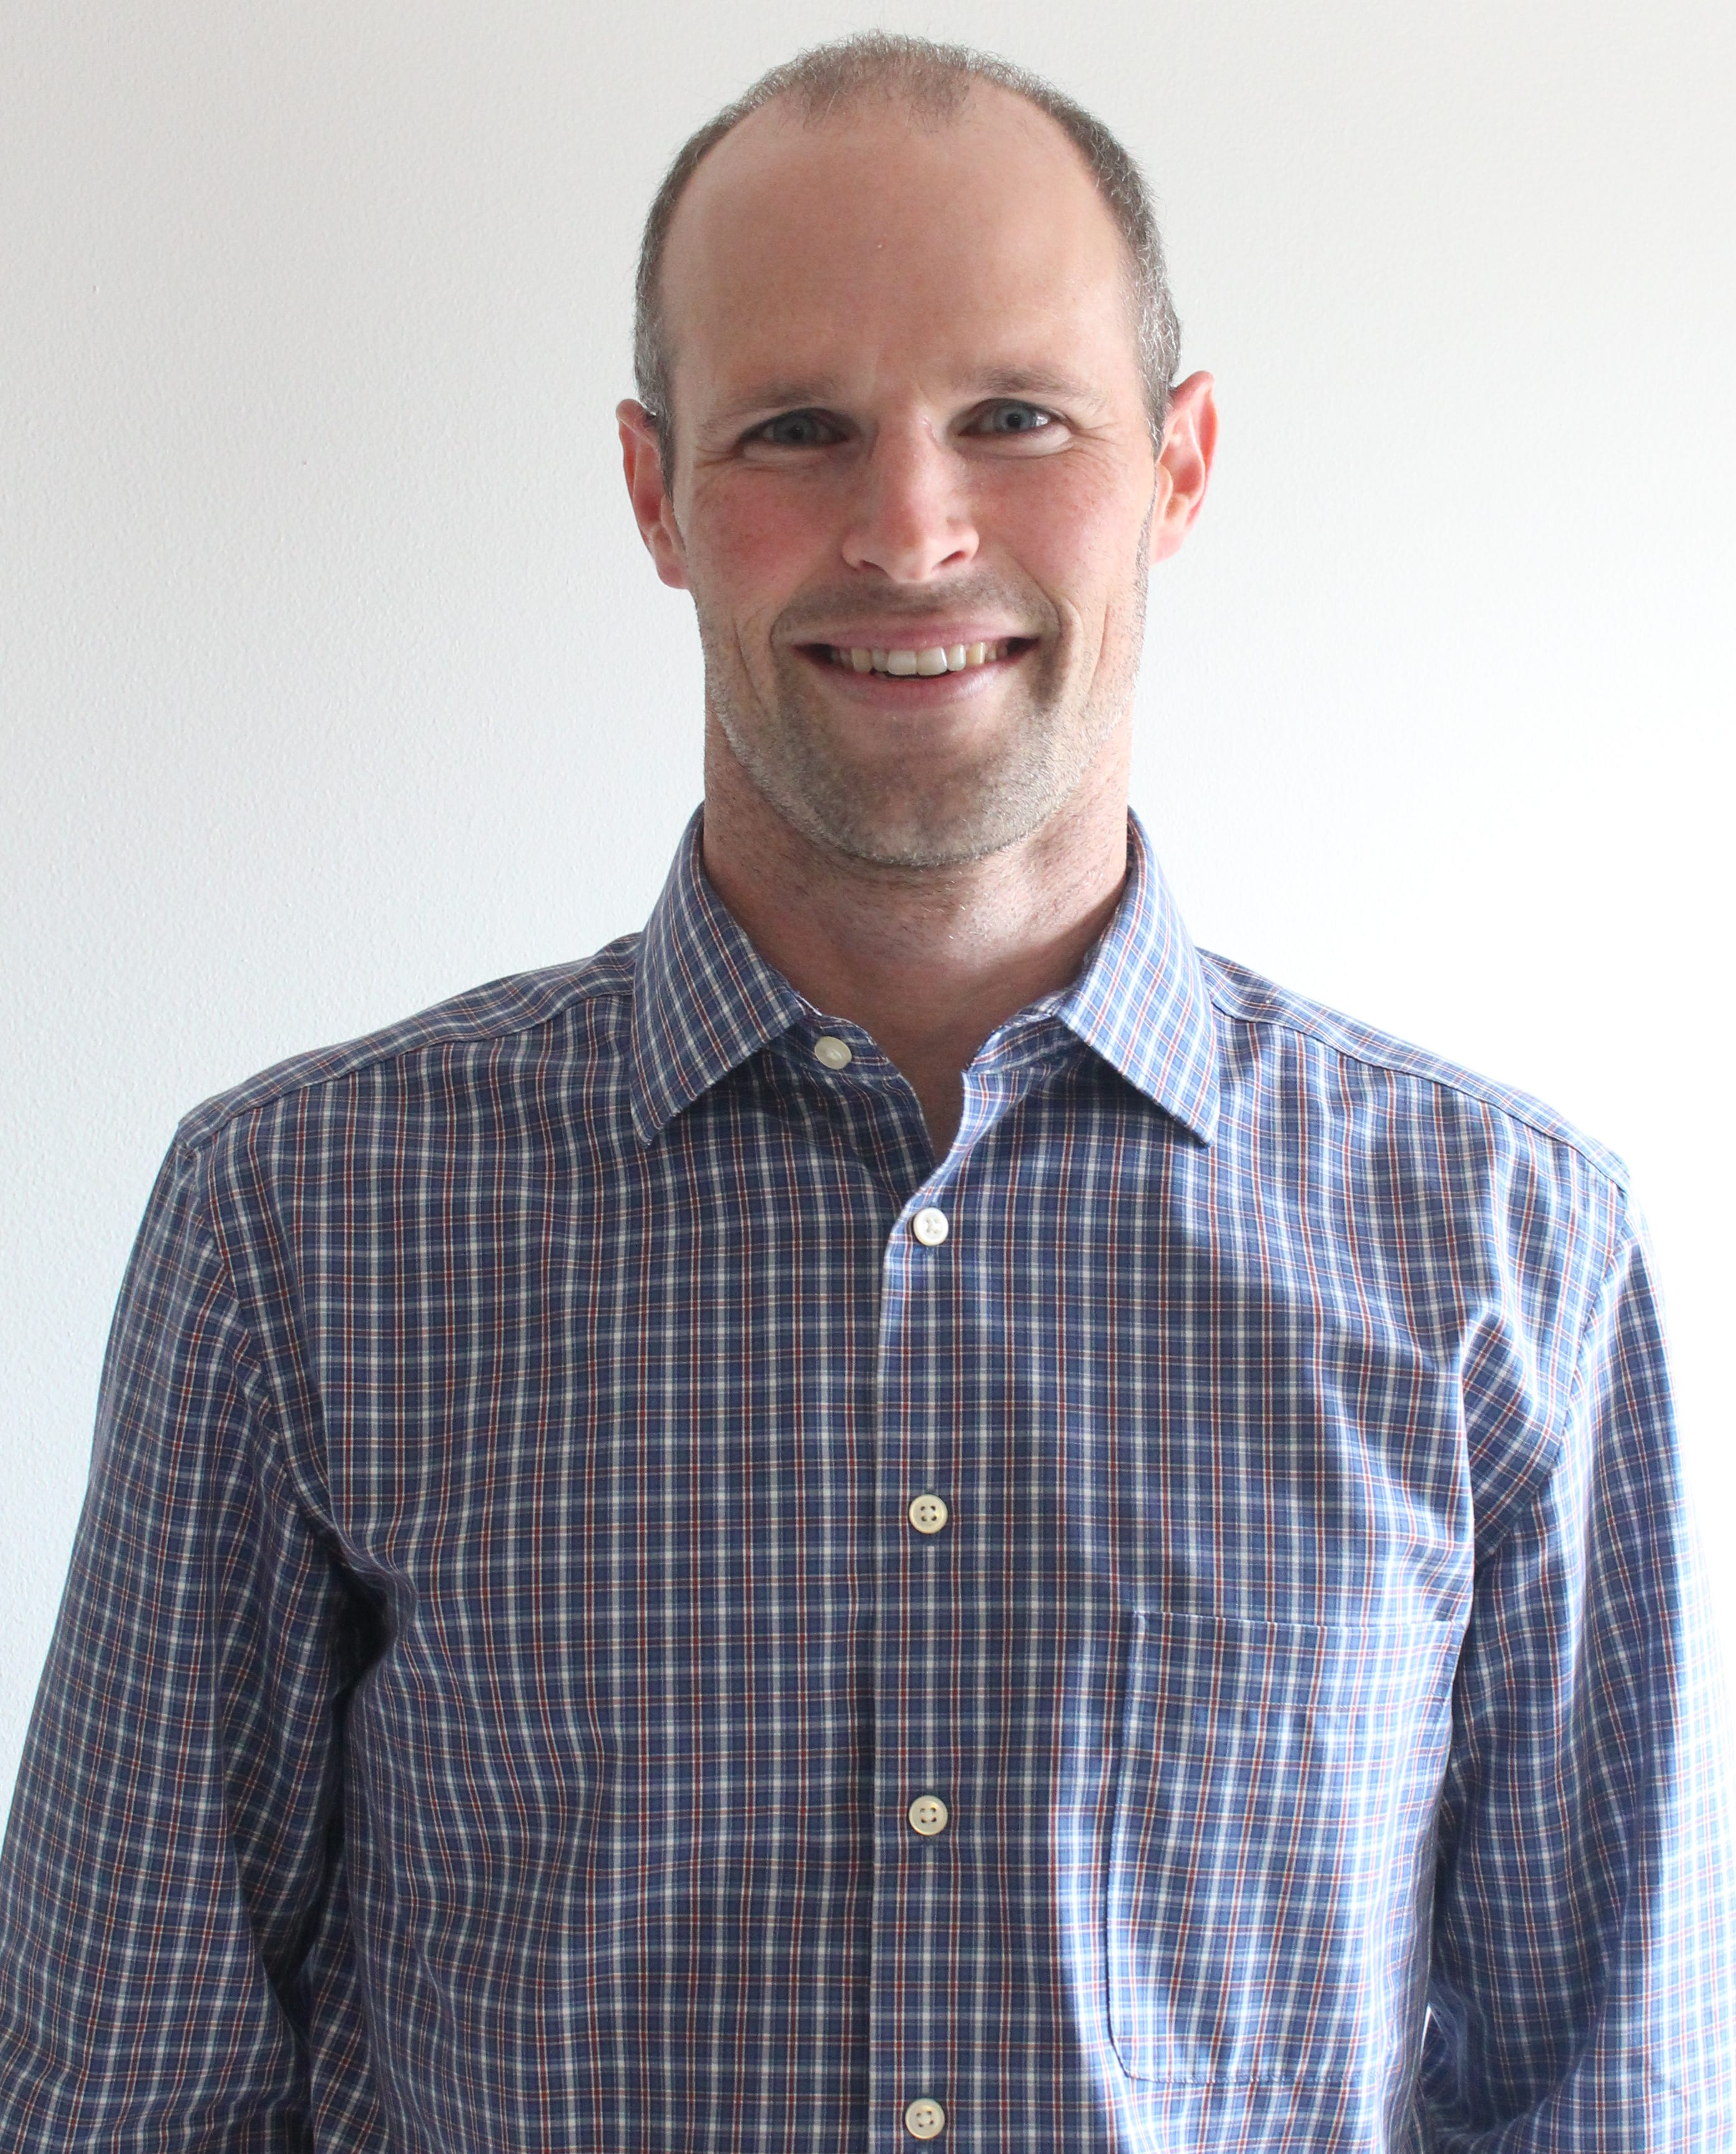 Nick Wuertz, Lutheran Services in Iowa Director of Refugee Community Services